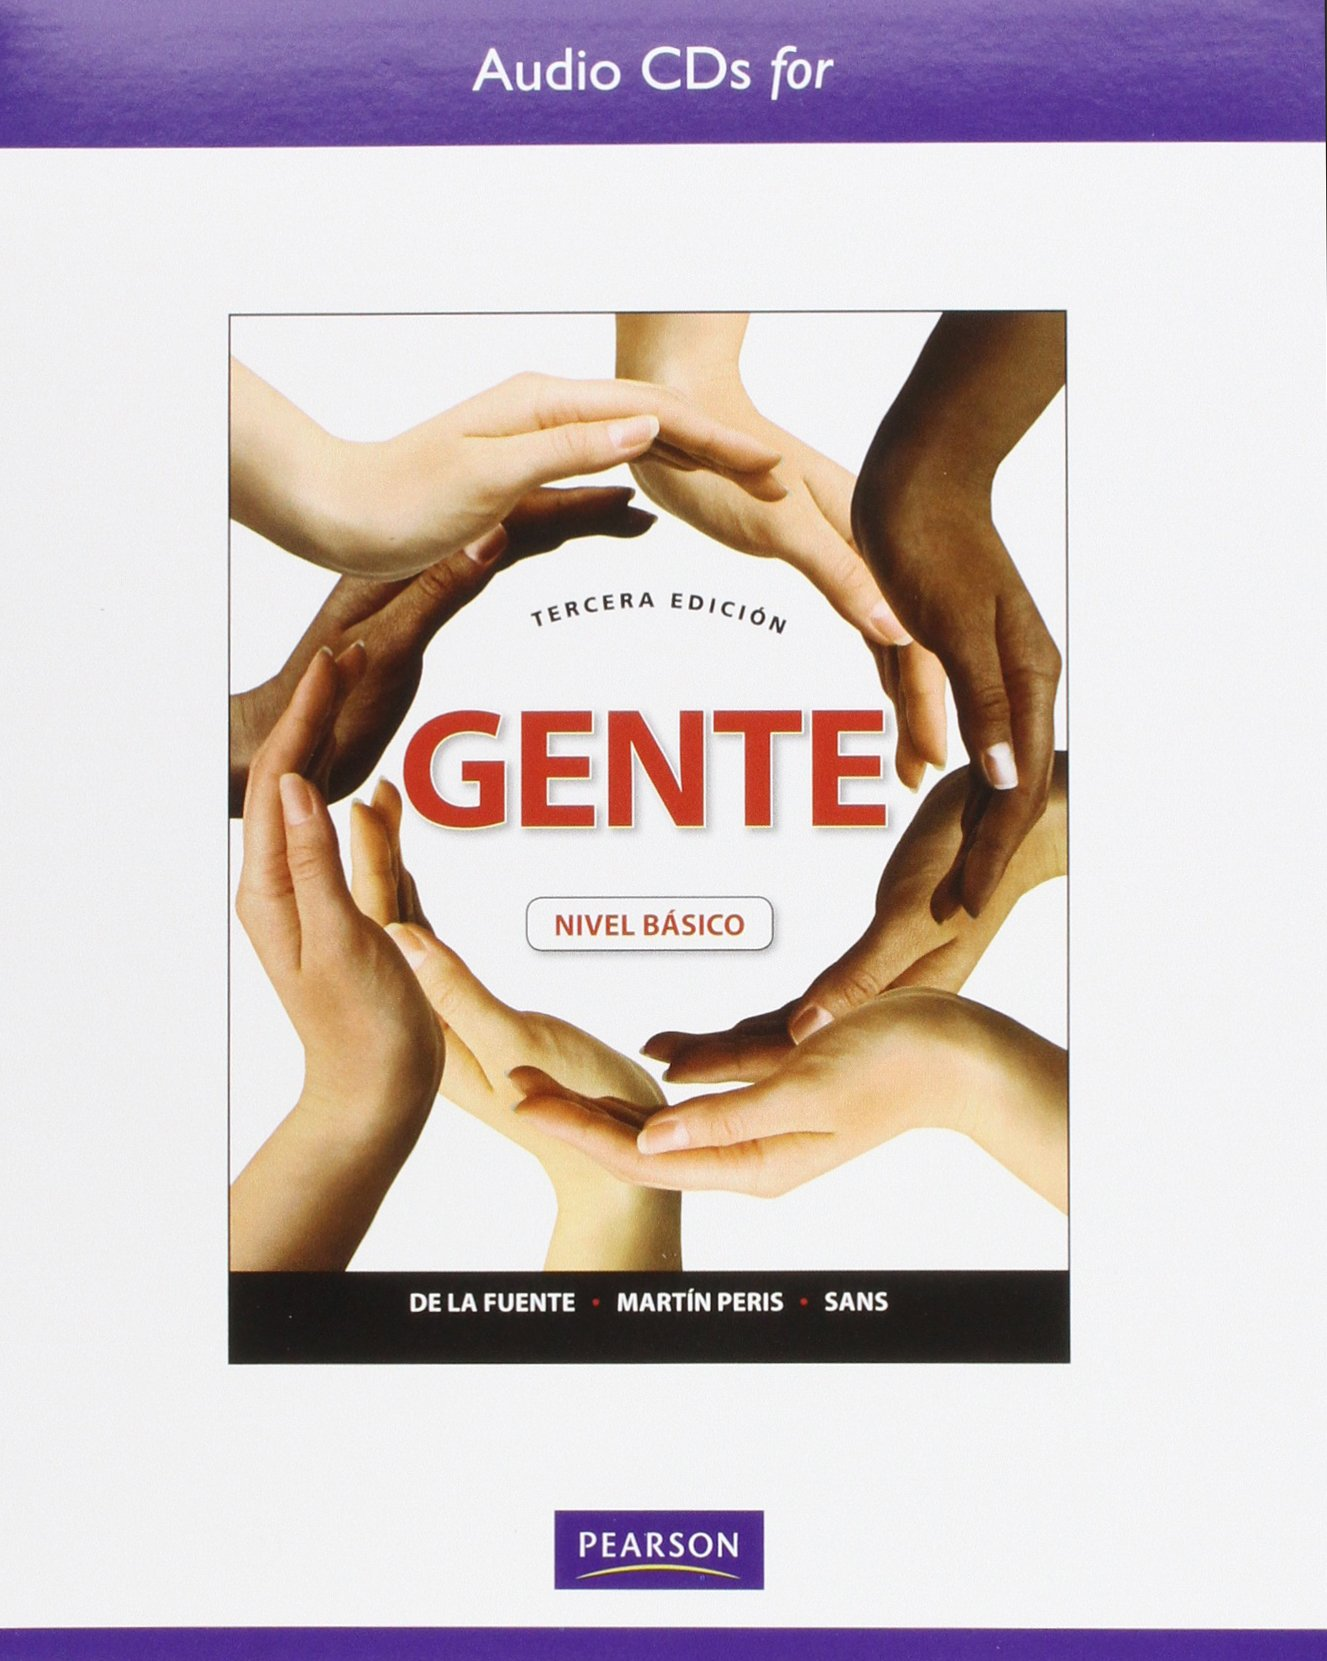 Audio CD for Gente: Nivel basico: 9780205017591: Amazon.com ...